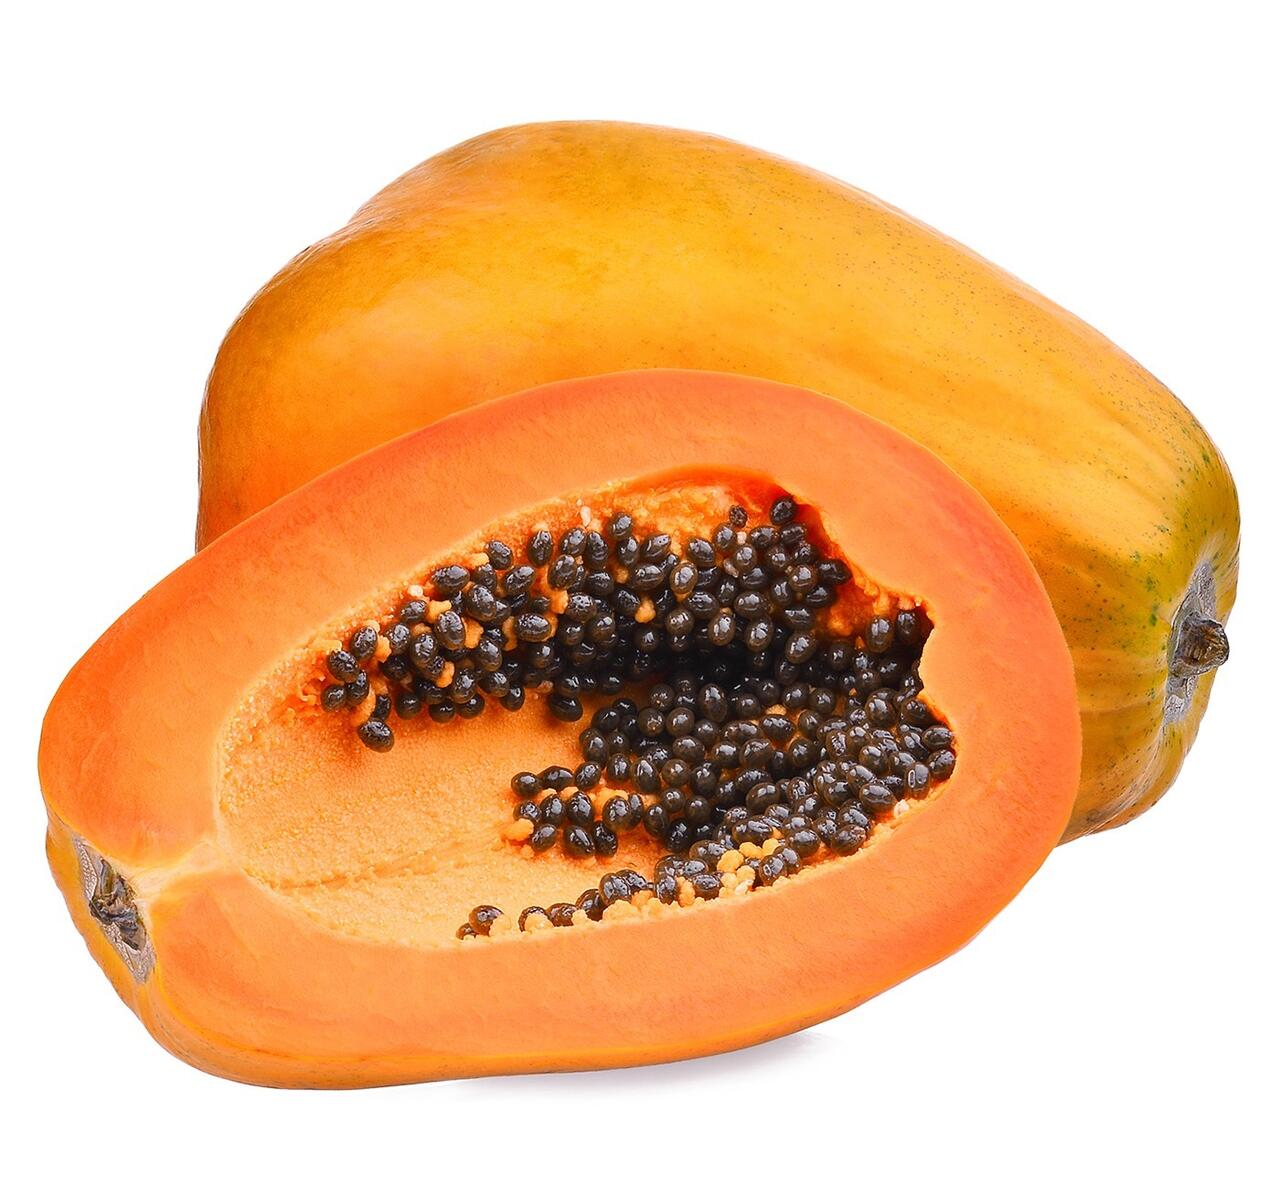 CDC warns about contaminated papayas after cases of Salmonella